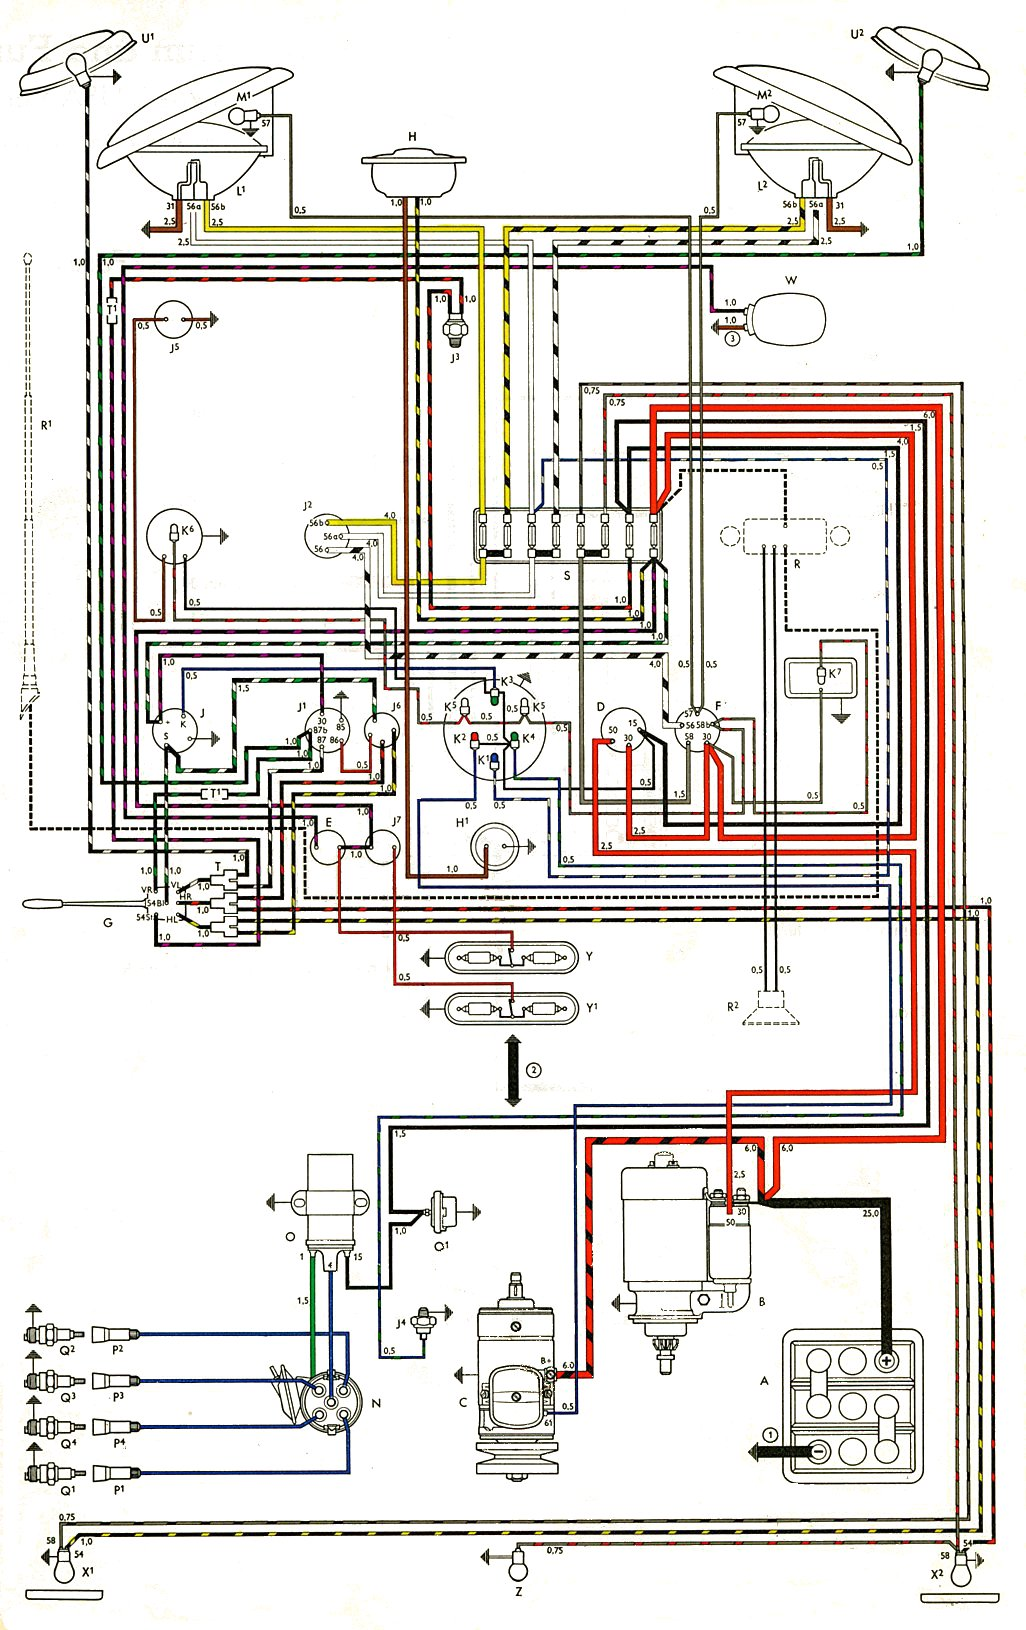 thesamba com type 2 wiring diagrams rh thesamba com School Bus Diagram School Bus Air Brake System Diagram